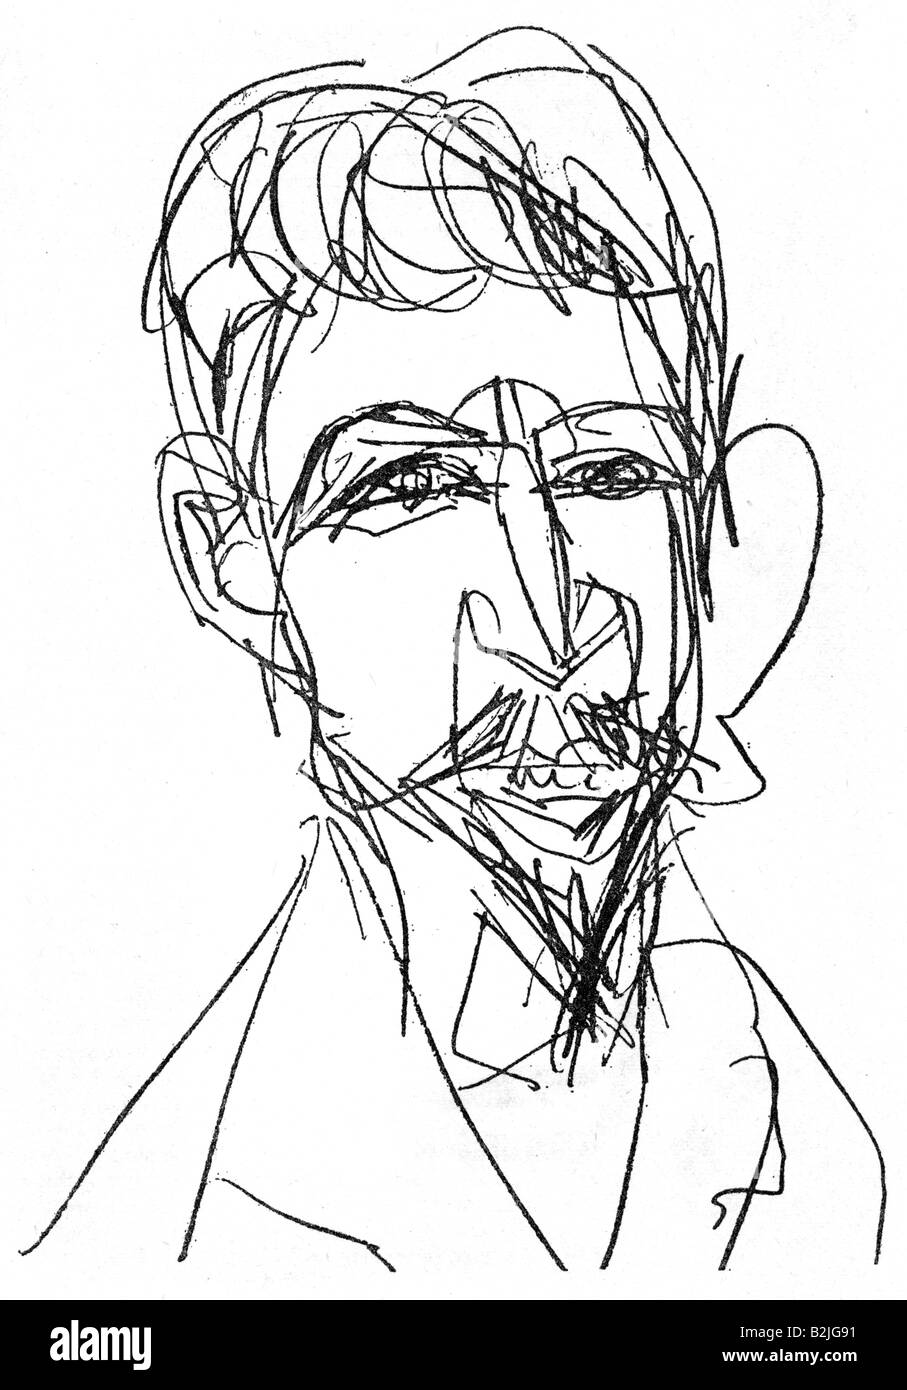 Doeblin, Alfred, 10.8.1878 - 26.6.1957, German author / writer, portrait, drawing by Ernst Ludwig Kirchner, 1913, - Stock Image